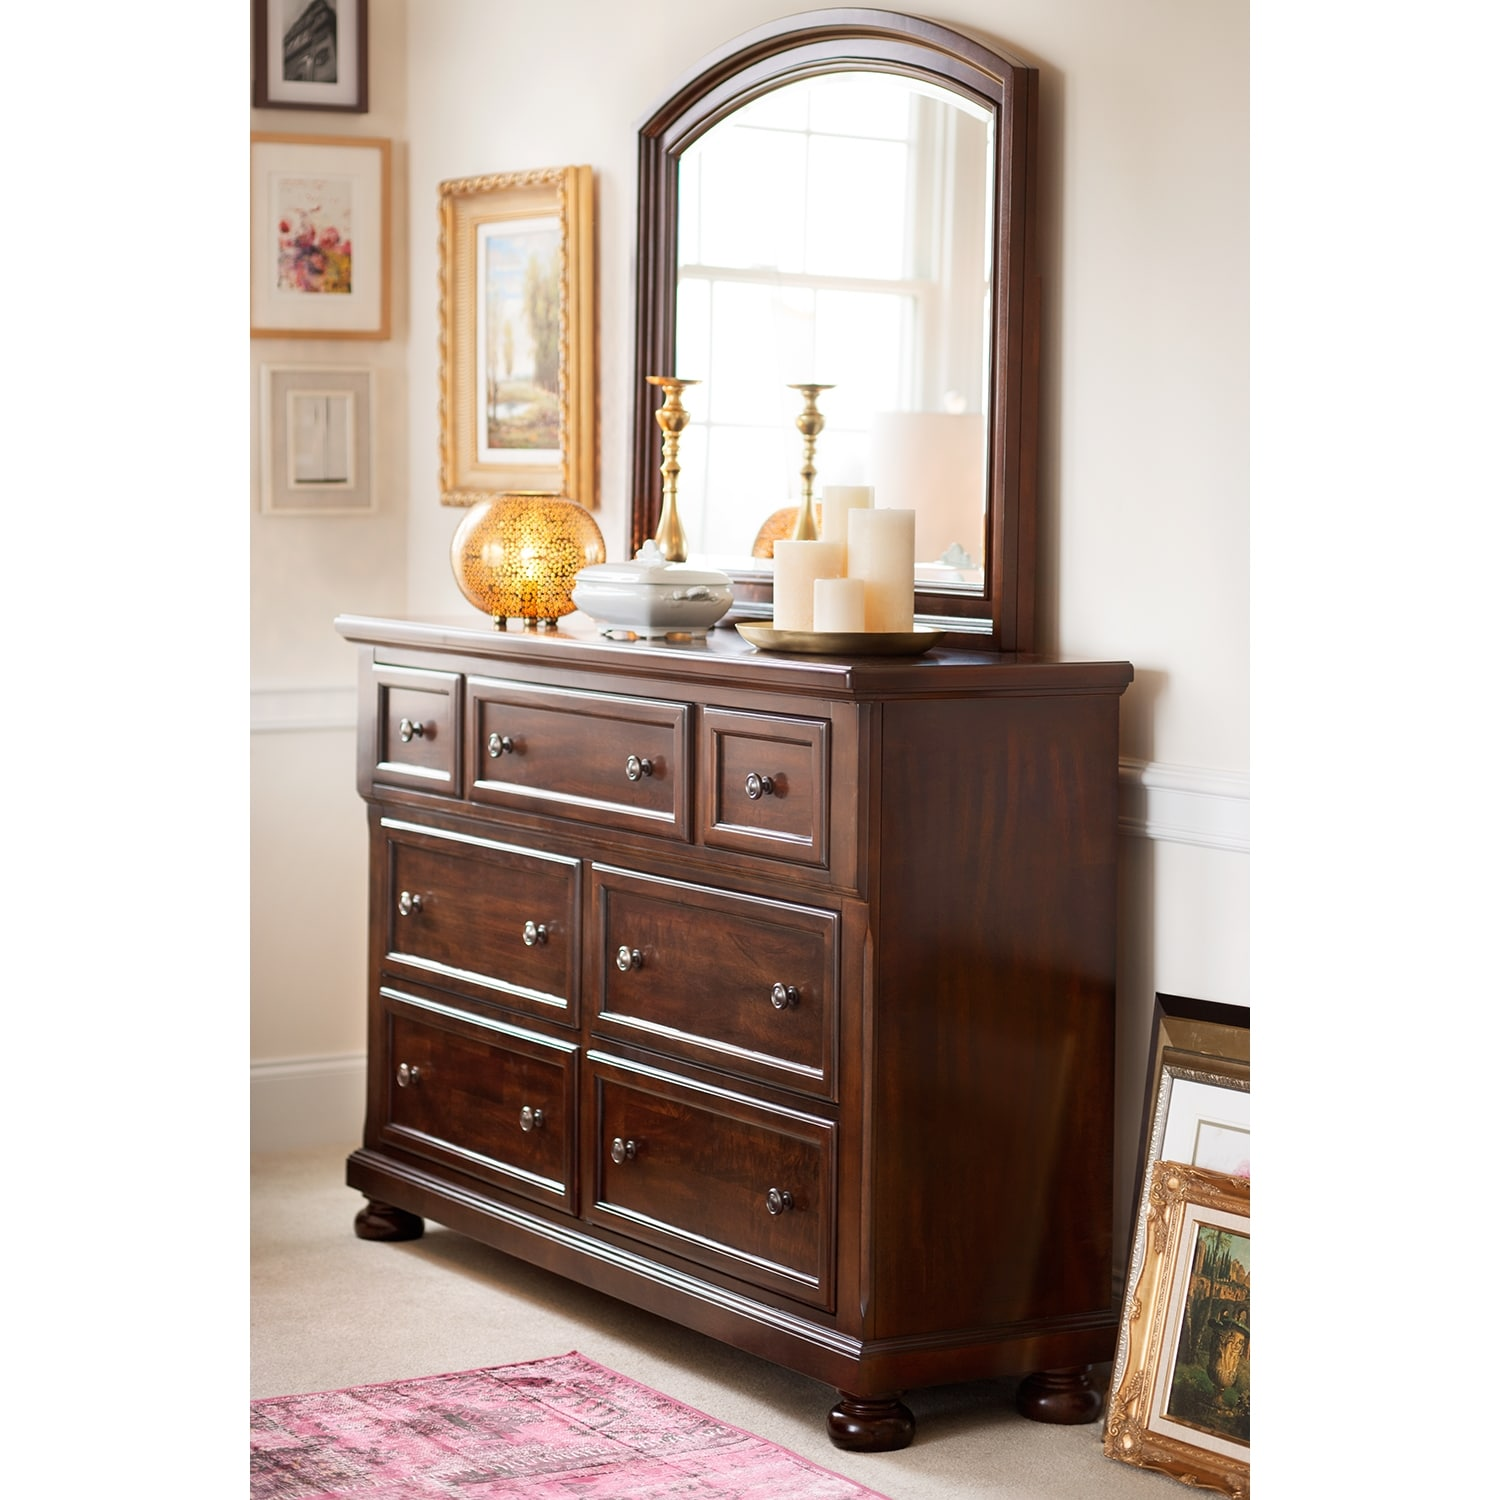 Hanover Dresser and Mirror - Cherry   Value City Furniture